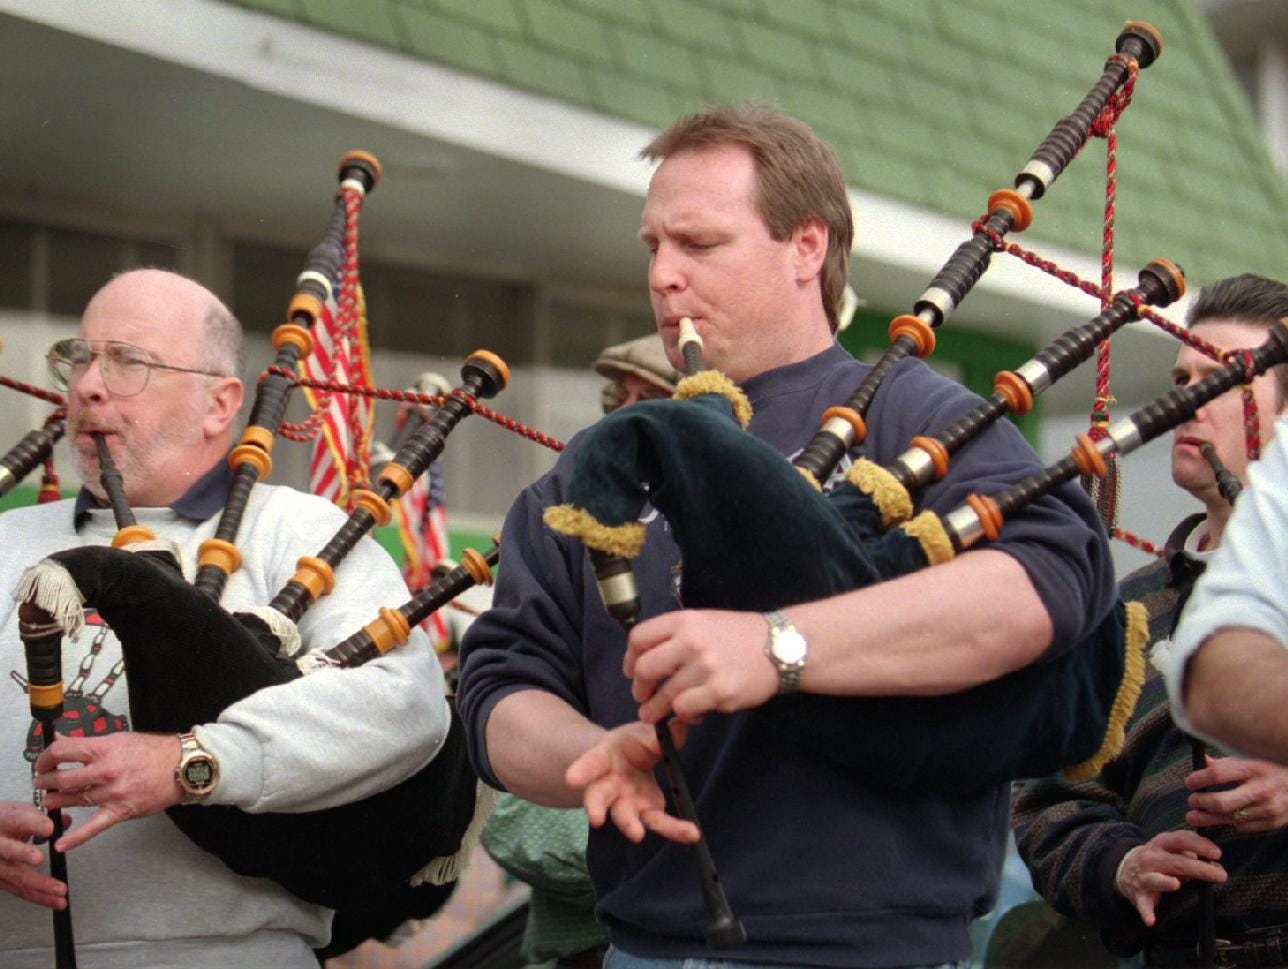 1998: Paul Newman a captain of the Stamford CT, fire department practices with the Westchester Firefighters Emerald Pipe & Drums band in front of the Ancient Order of Hibernians on Main Street in Binghamton.